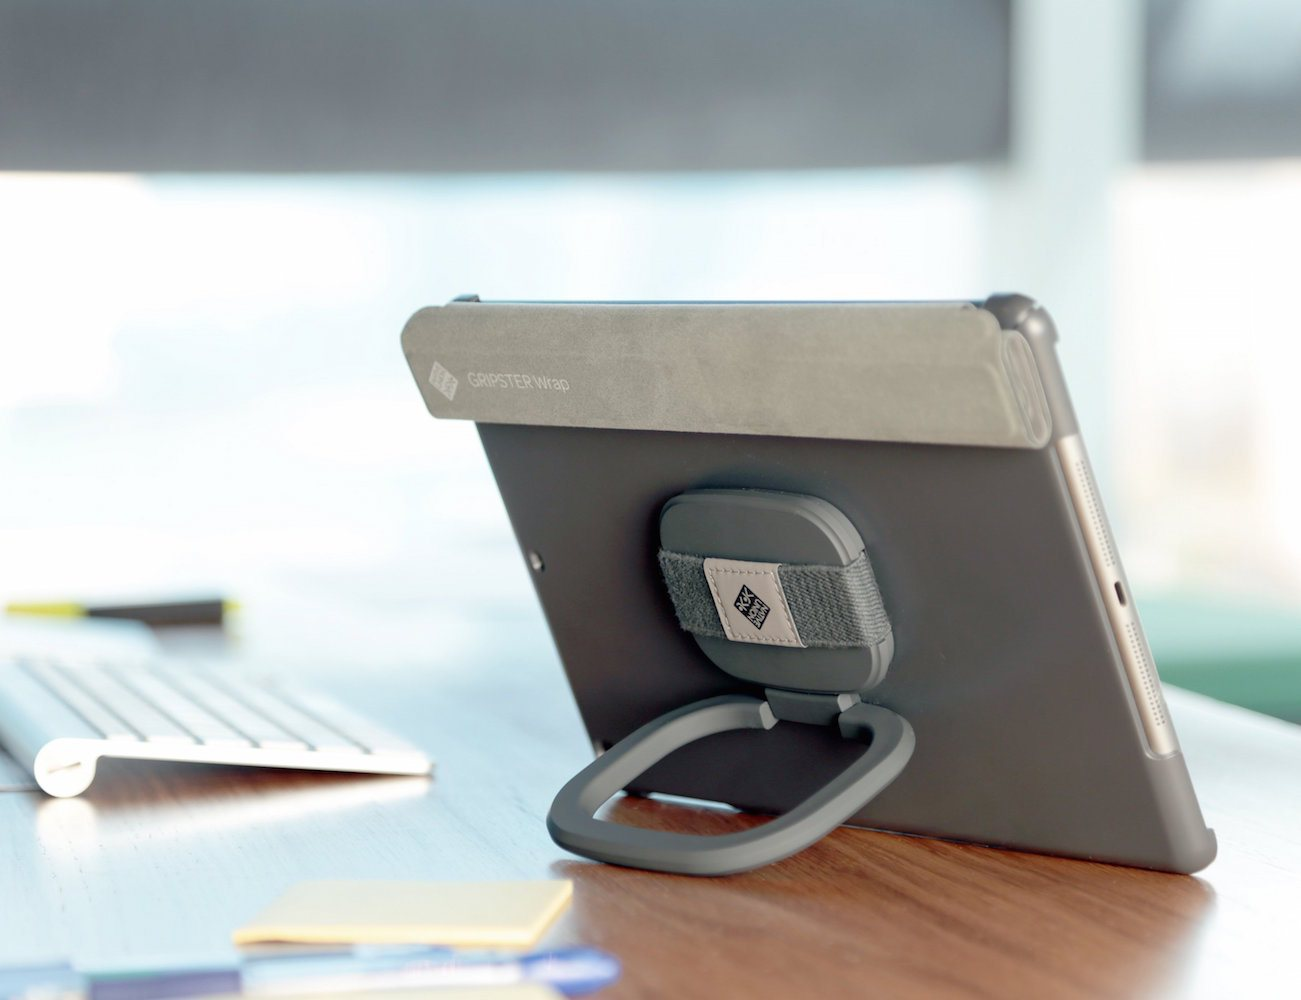 Grip your iPad or iPad Mini safely by using the Gripster Wrap iPad Case